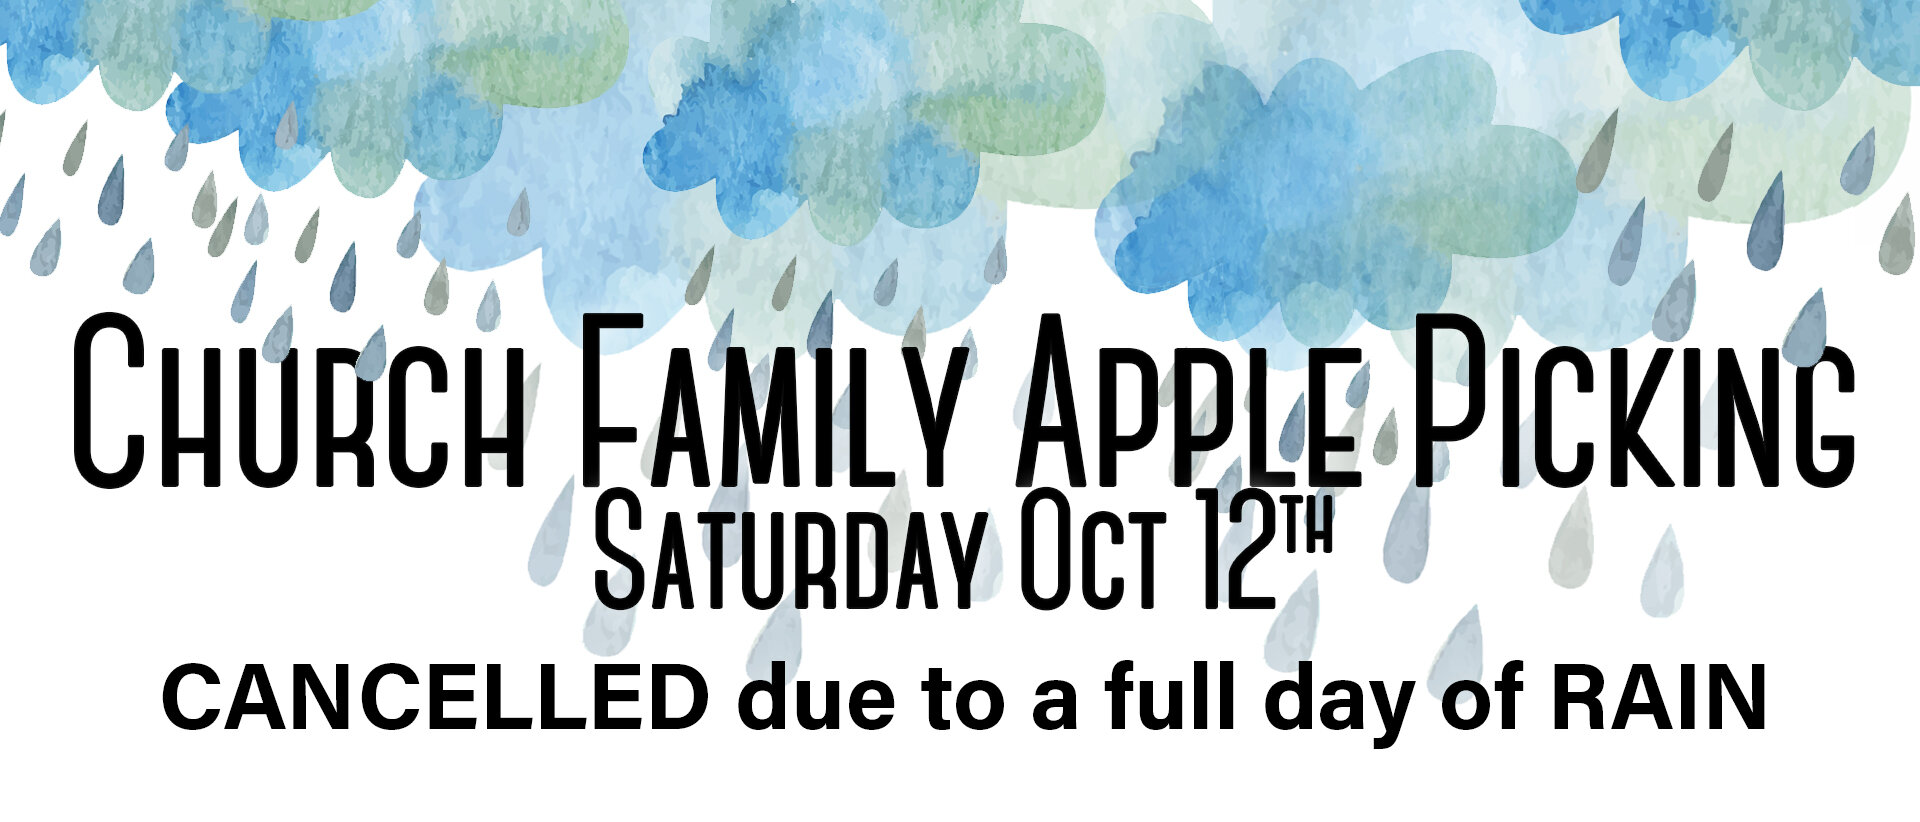 Church Family Apple Picking Fall 2019 condensed website CANCELLED.jpg